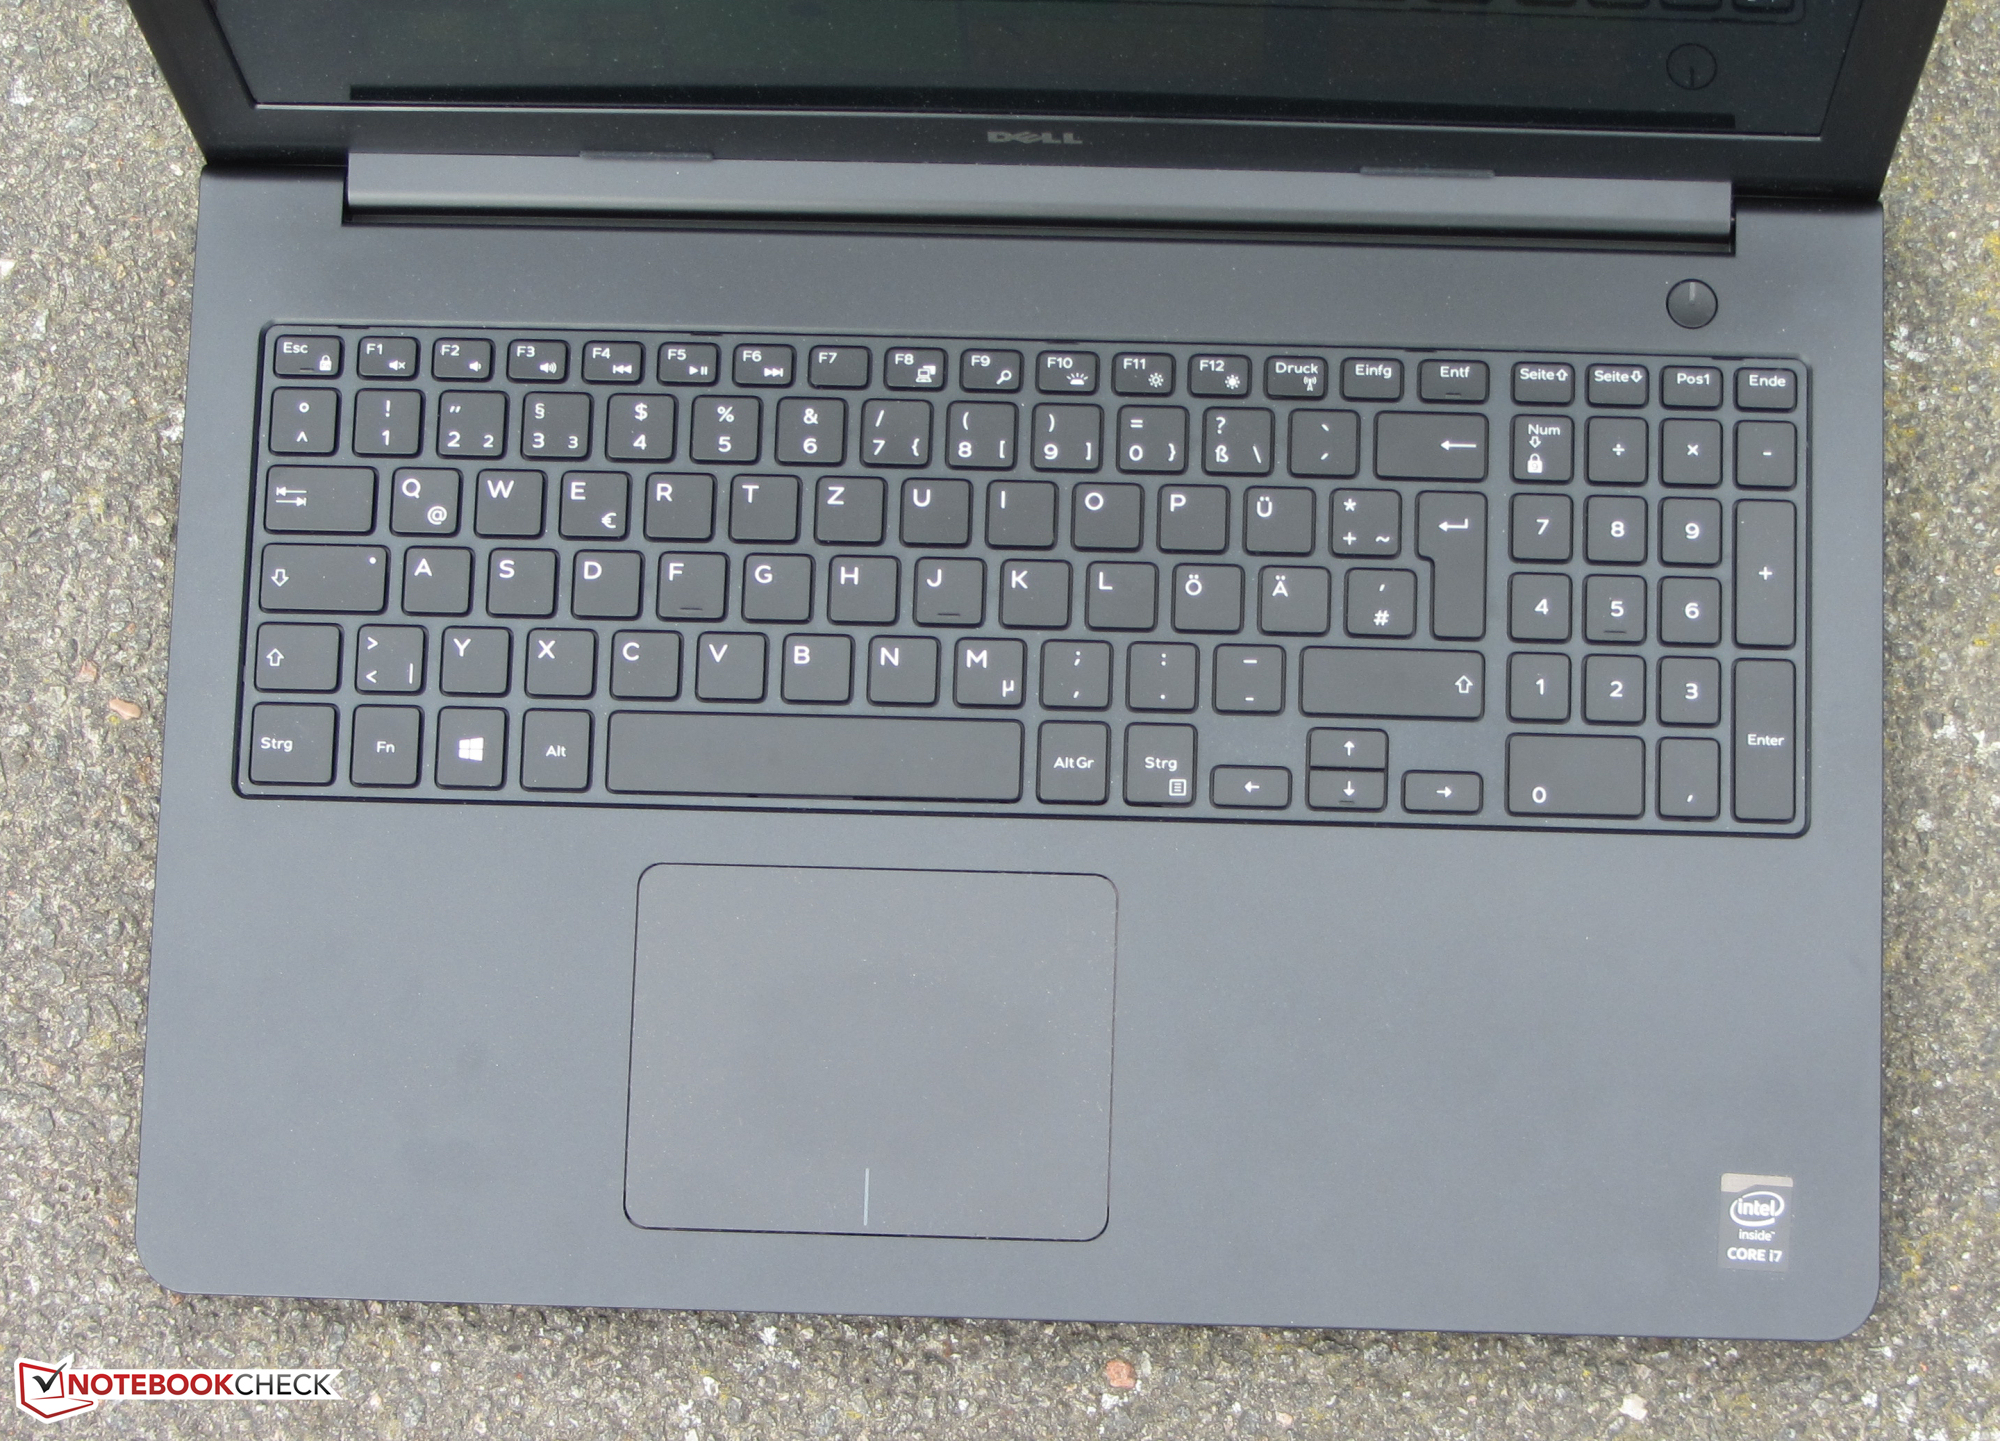 Dell Inspiron 15 5548 Notebook Review Notebookcheck Net